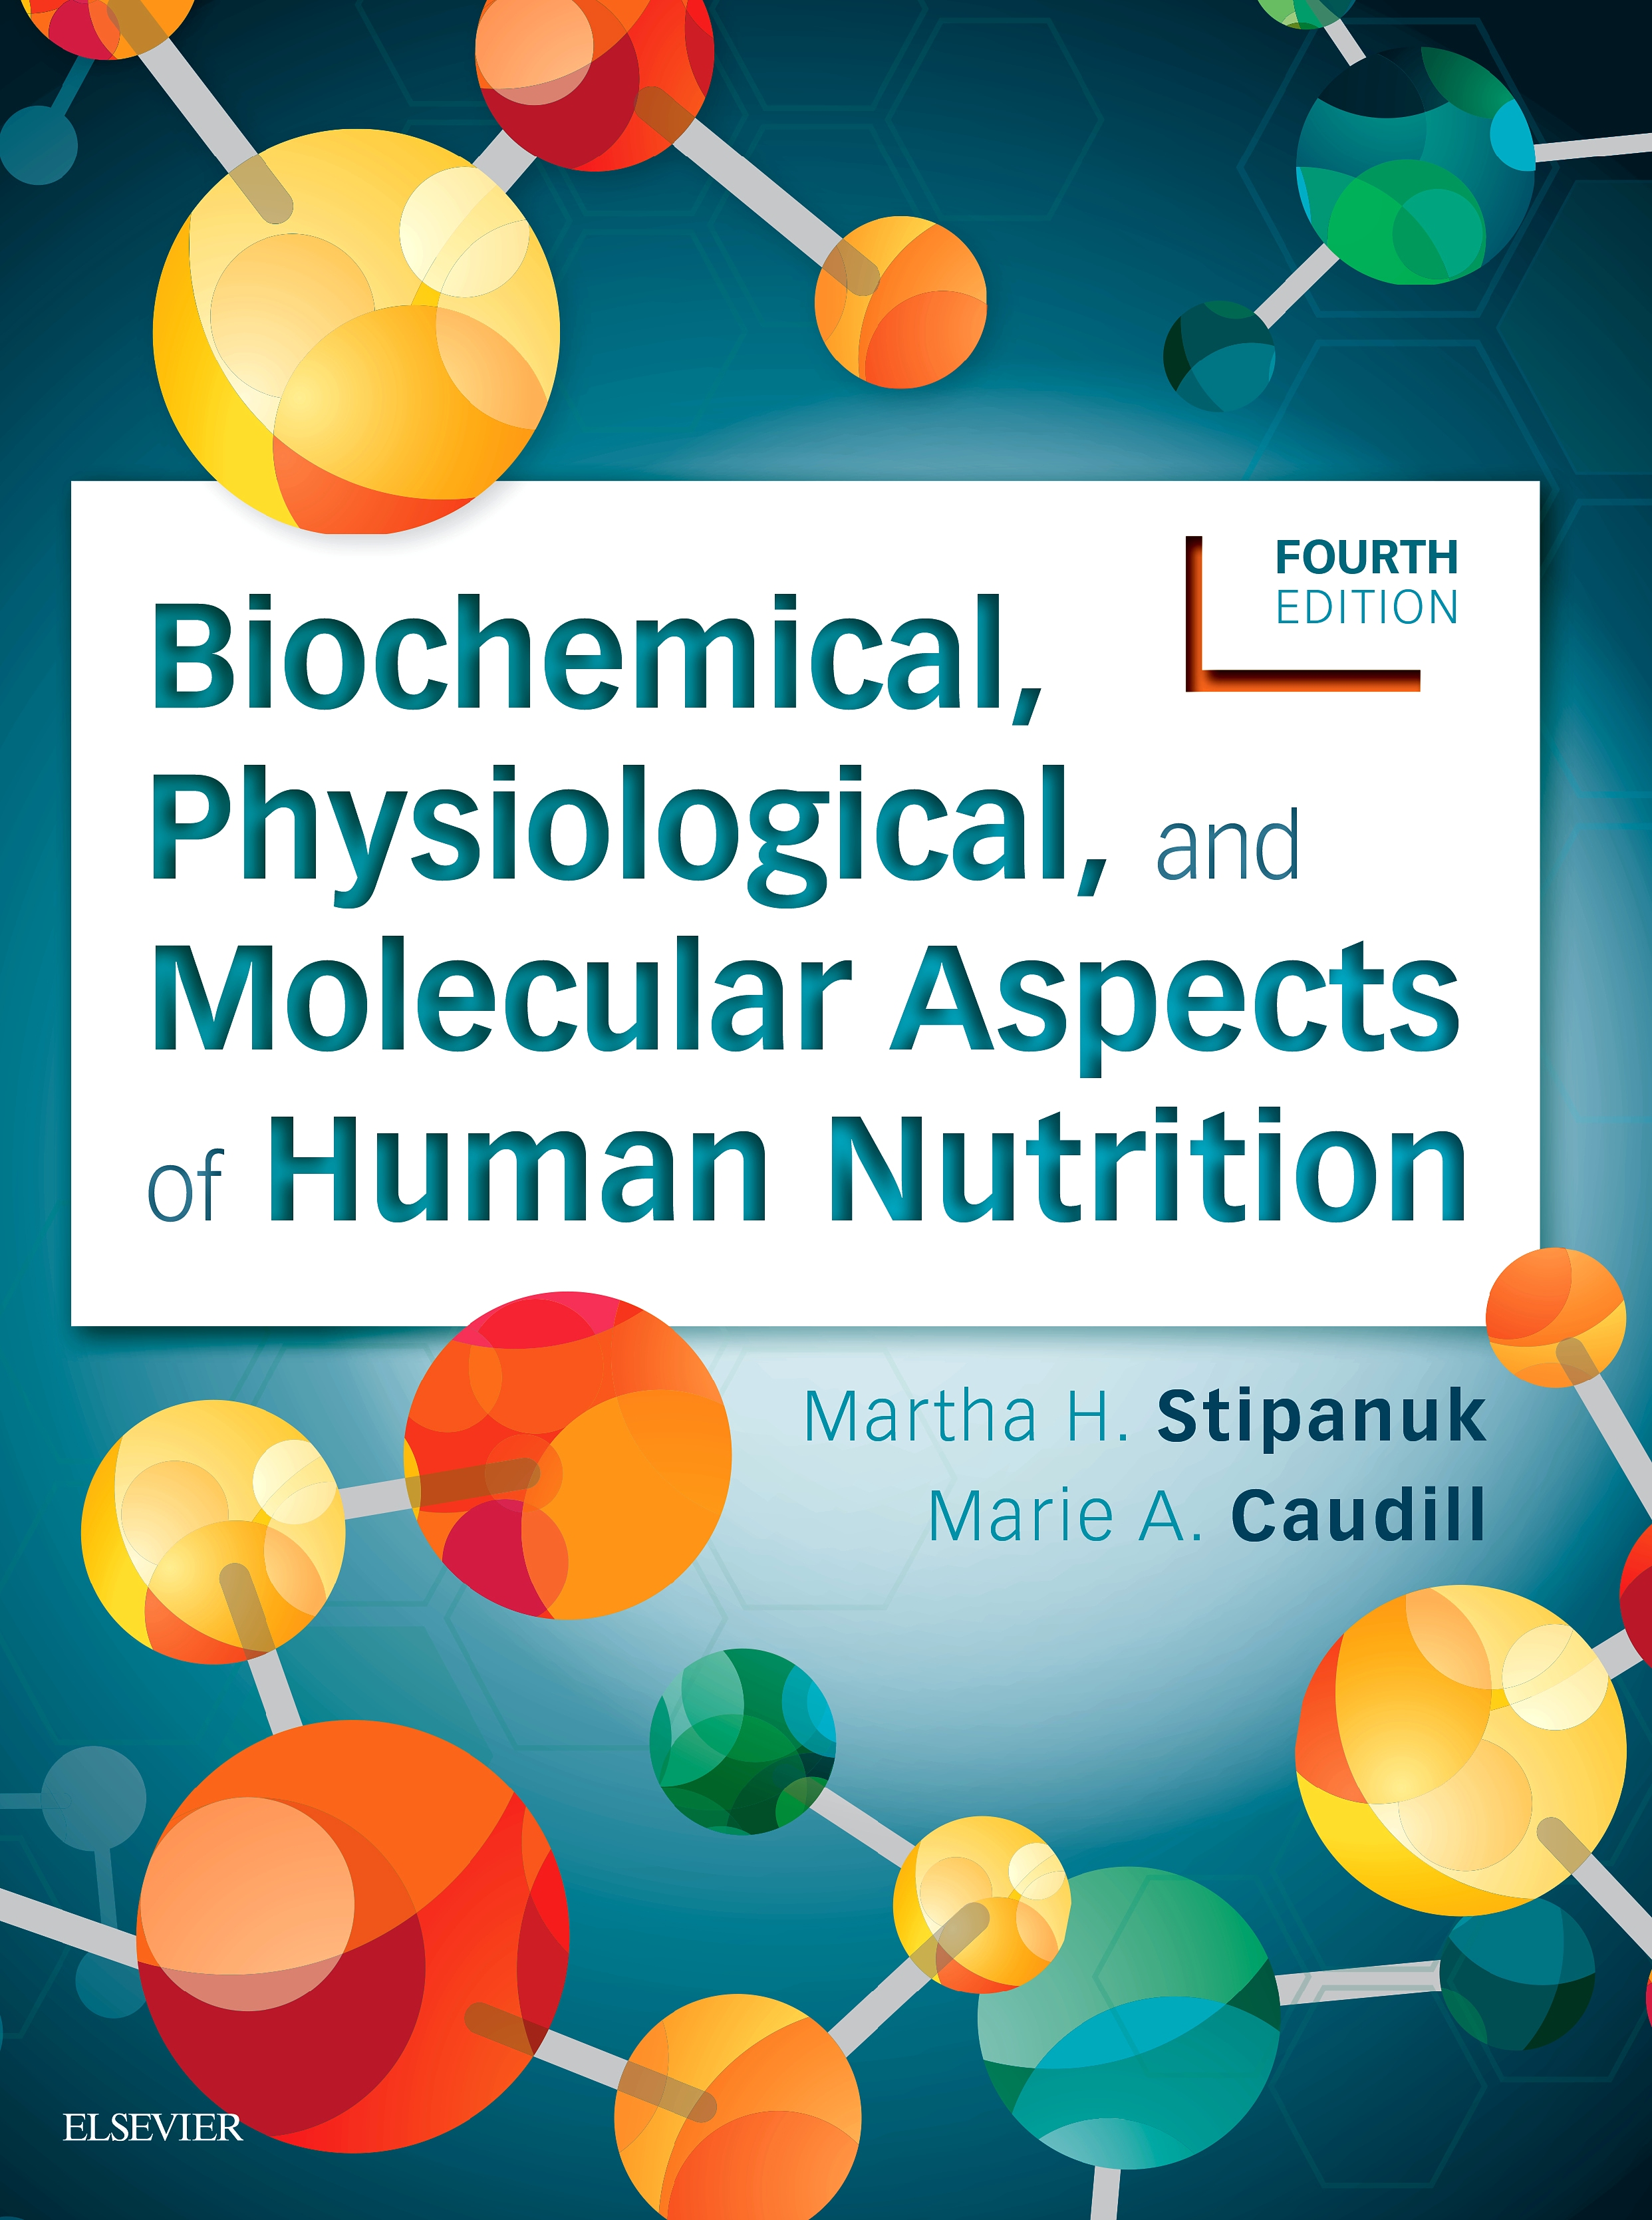 Evolve Resources for Biochemical, Physiological, and Molecular Aspects of Human Nutrition, 4th Edition